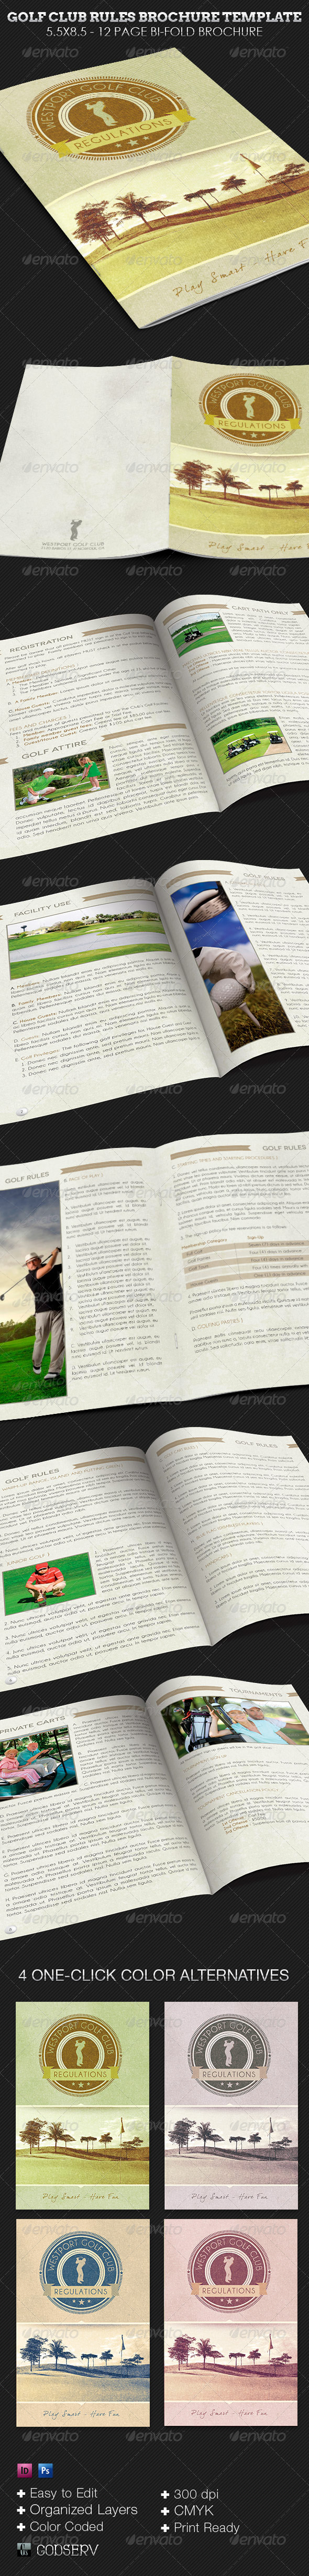 Golf Club Rules Brochure Template - Print Templates